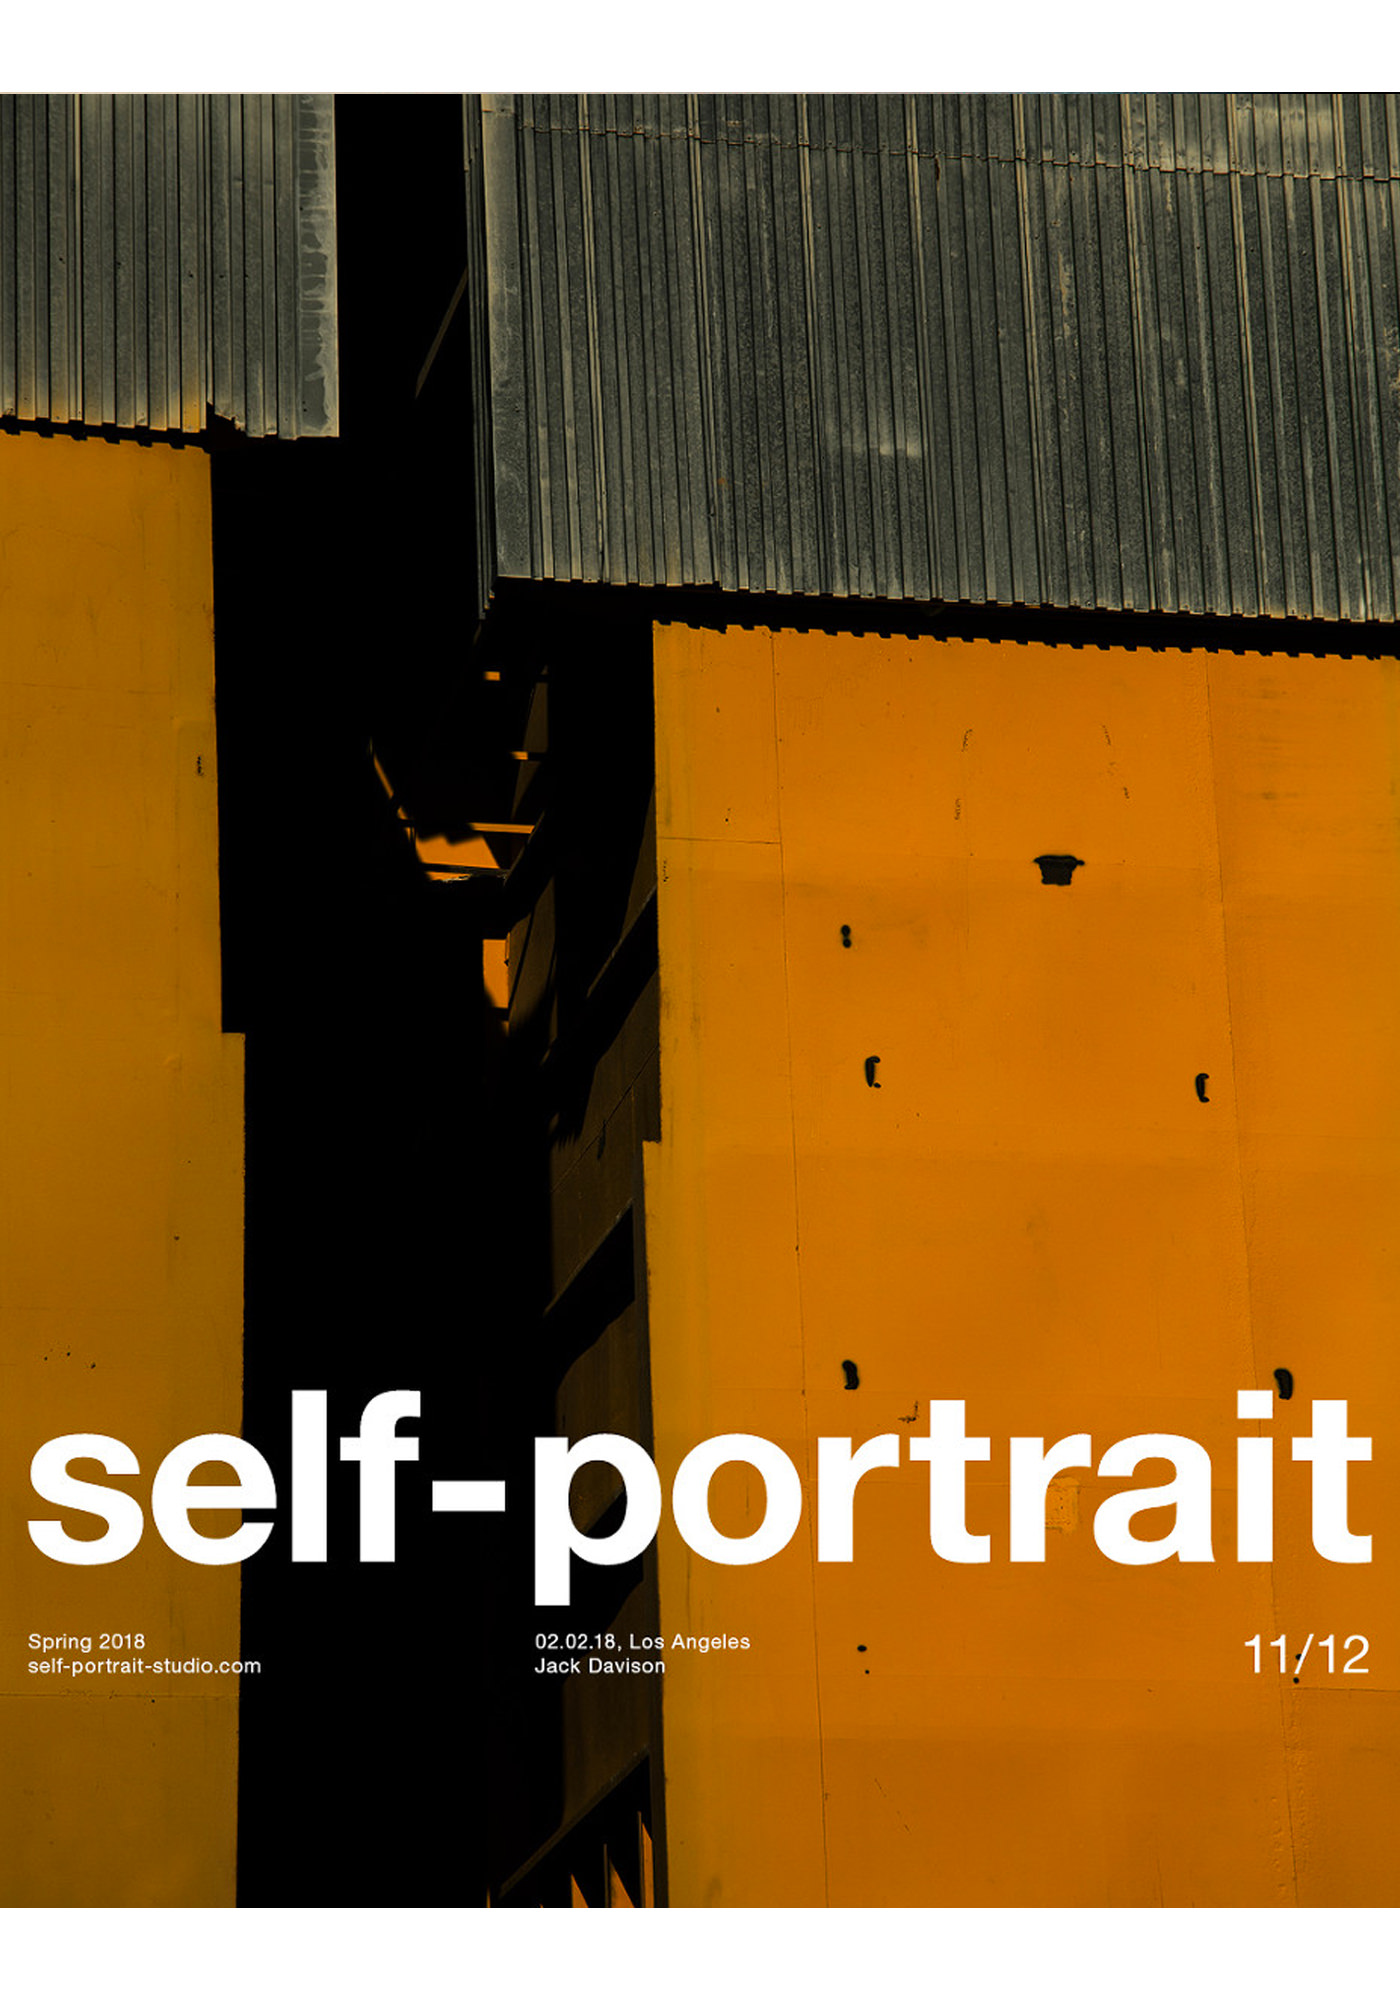 Jack Davison Photographie Magazine Cover Self-Portrait Couleur